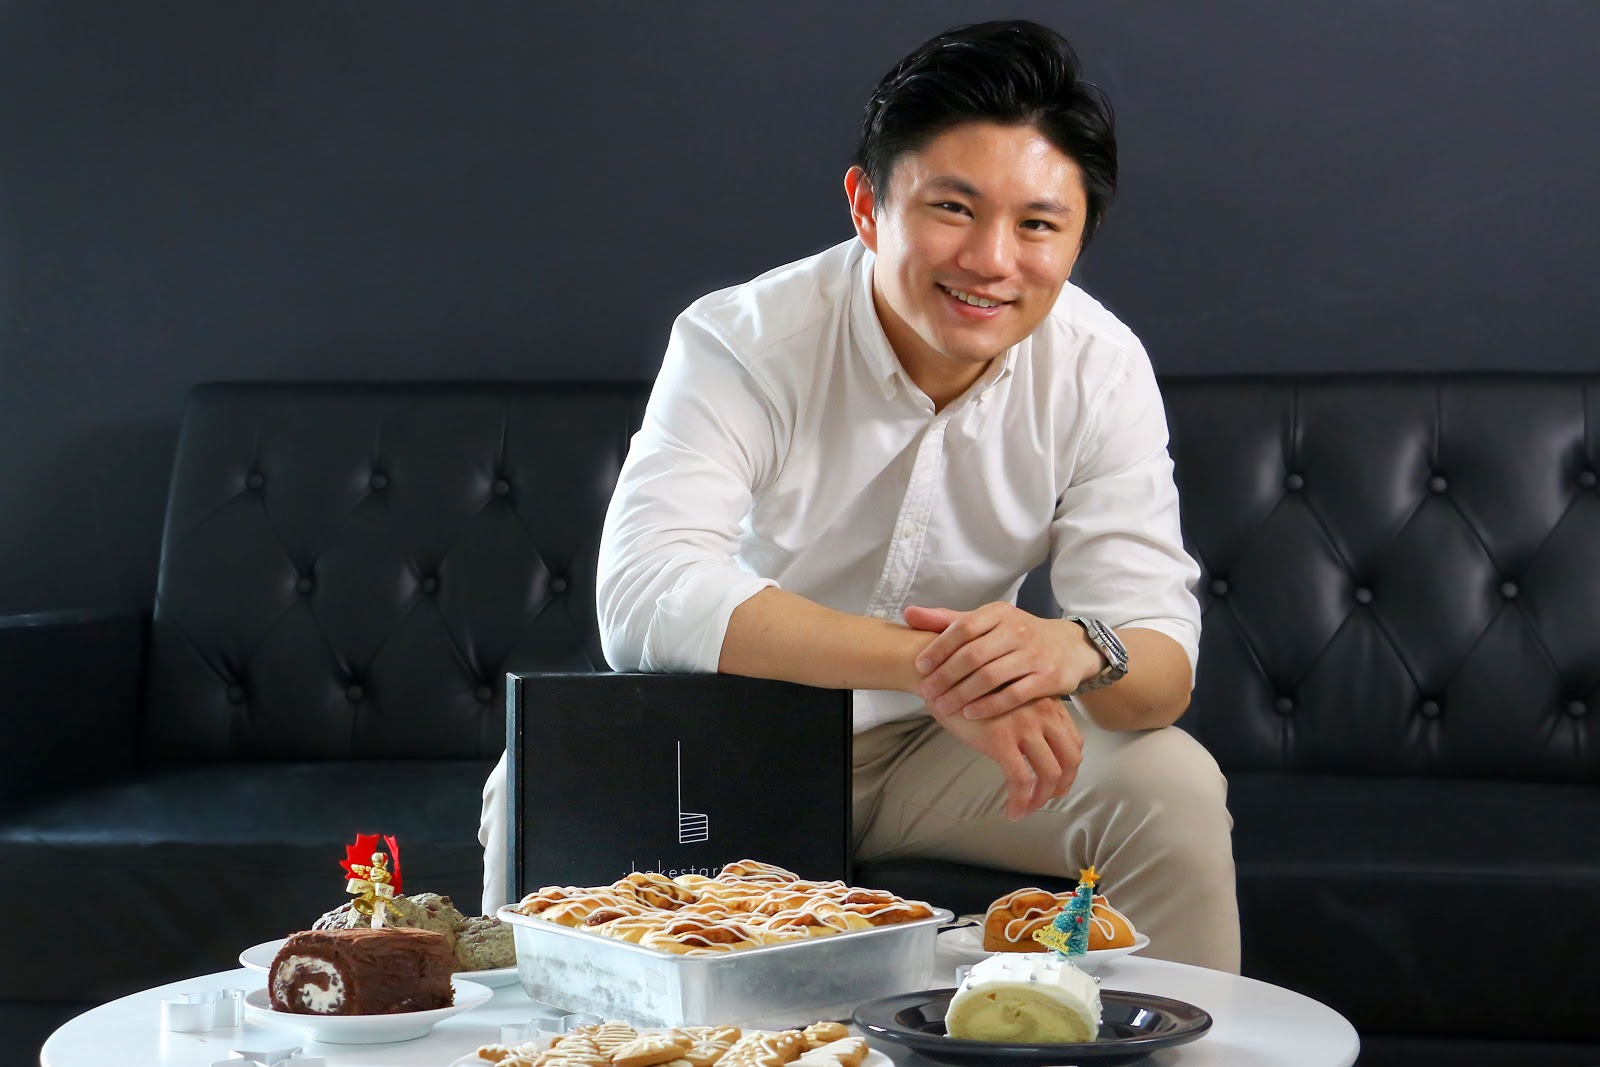 Gregory Ong is the founder of Bakestarters, a Singaporean company that creates baking kits complete with step-by-step instruction cards and video tutorials.